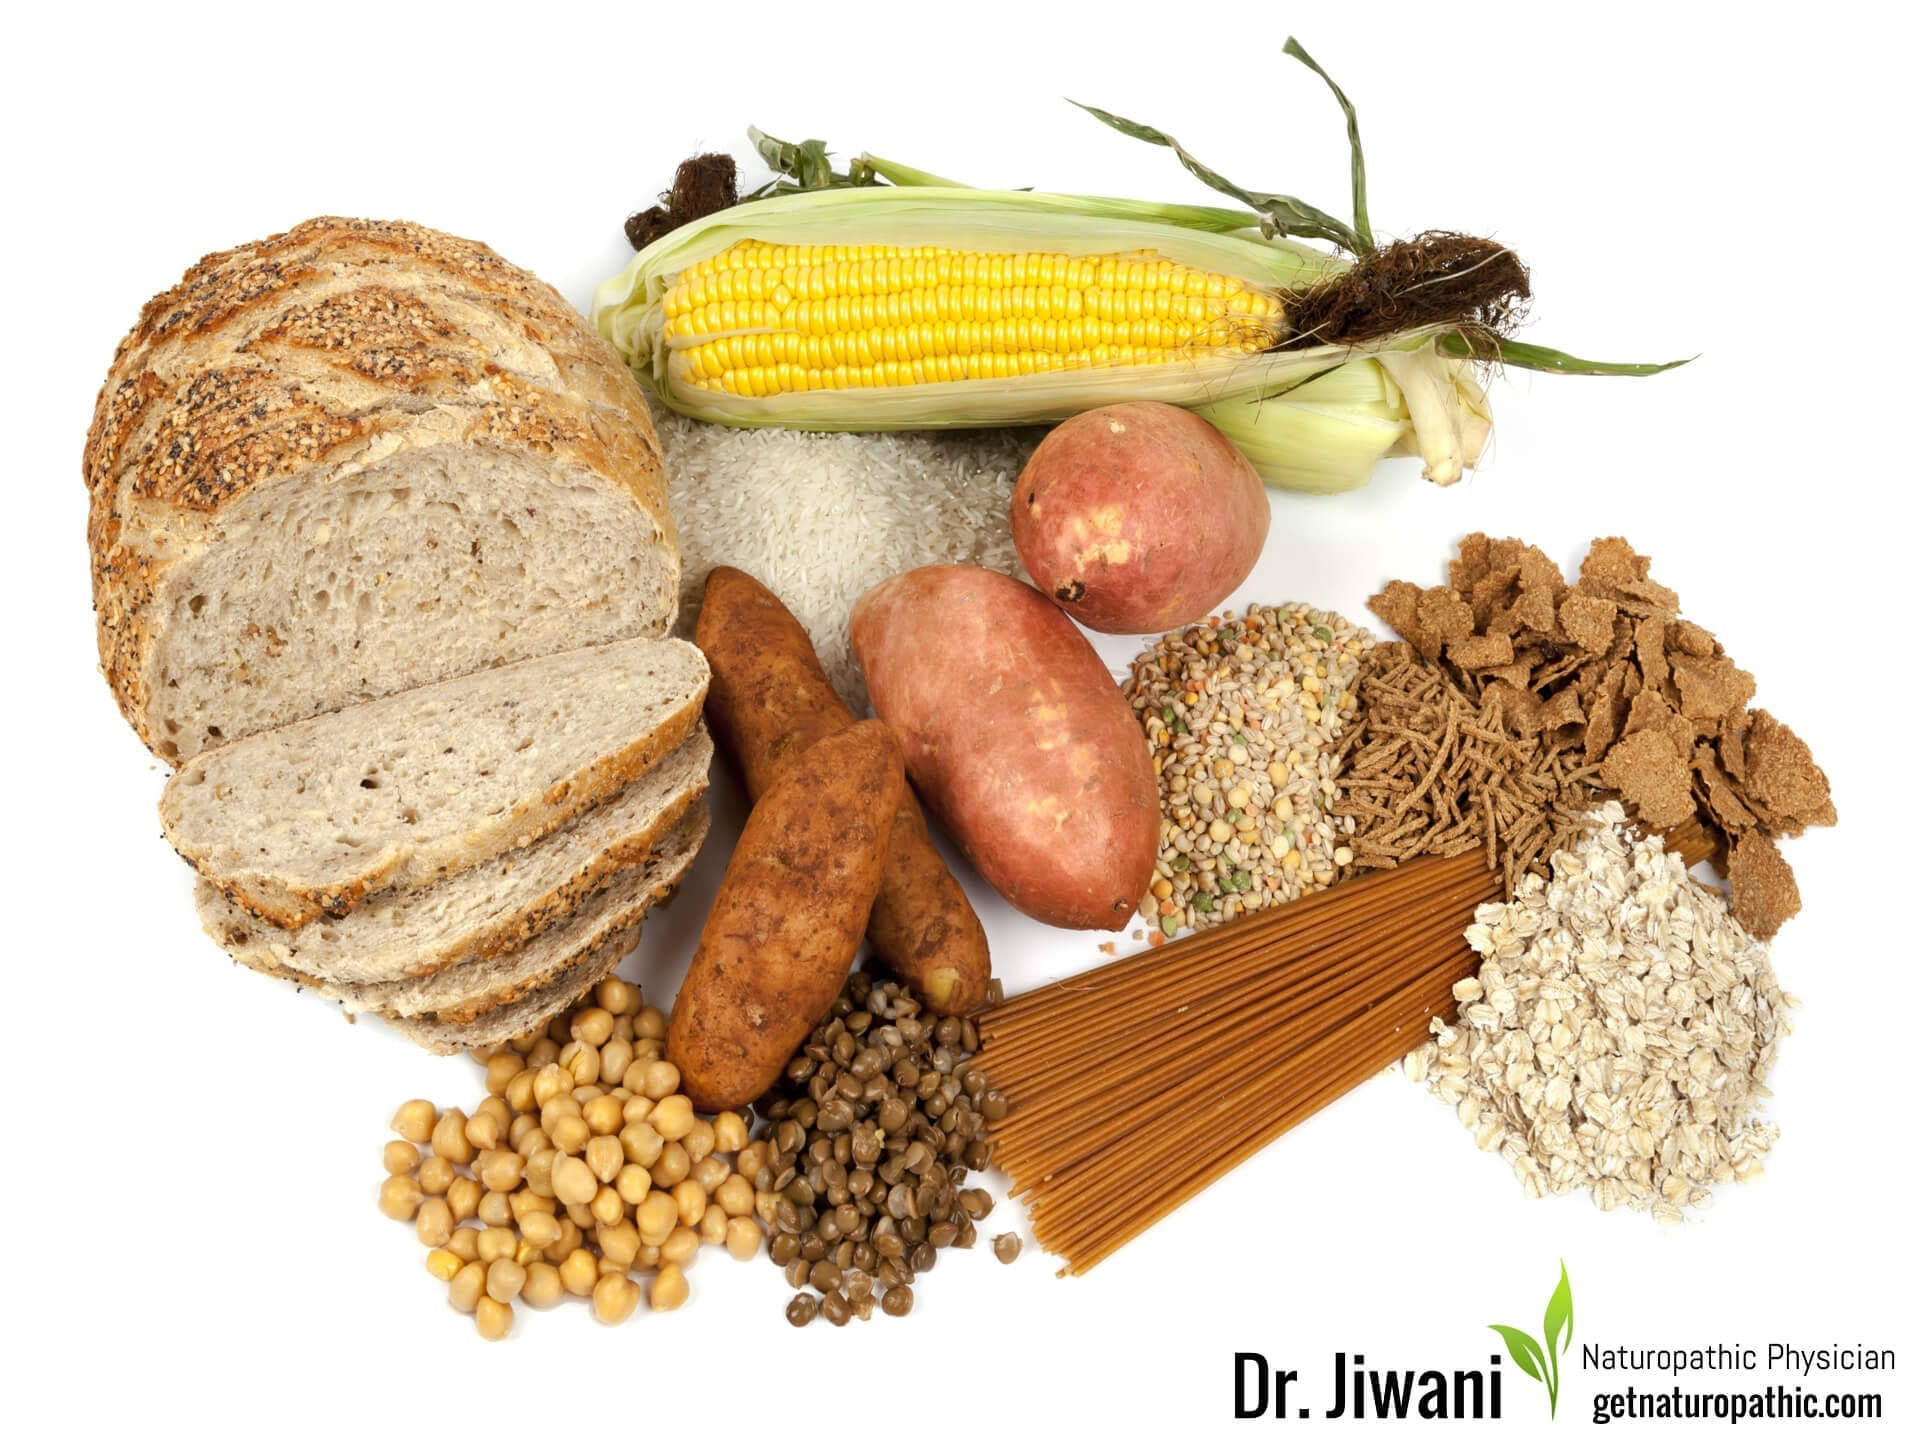 Dr. Jiwani The Keto Diet Avoid List for Food Allergies* | Dr. Jiwani's Naturopathic Nuggets Blog